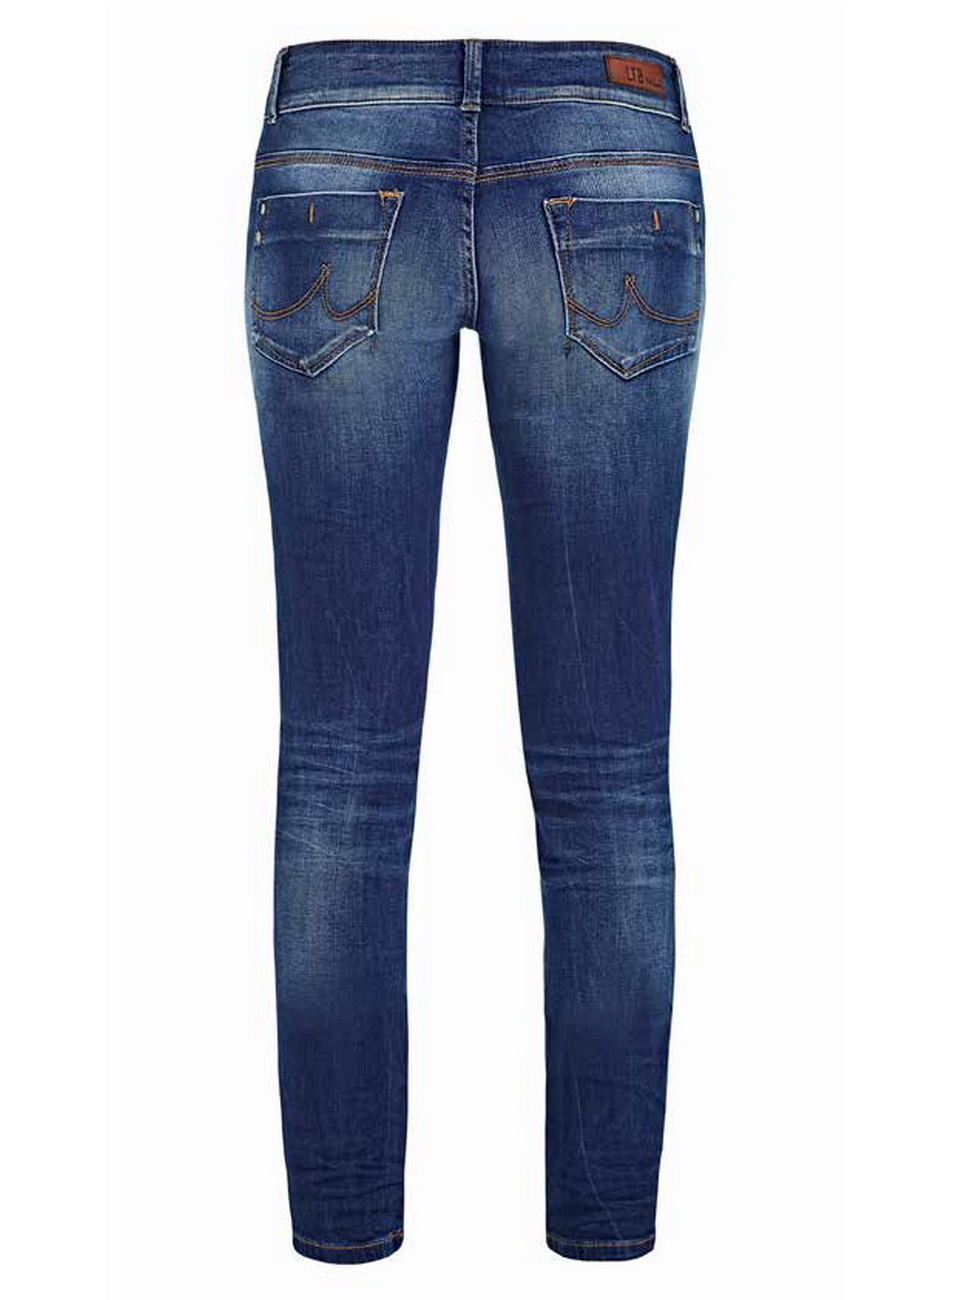 ltb-damen-jeans-molly-slim-fit-blau-heal-wash